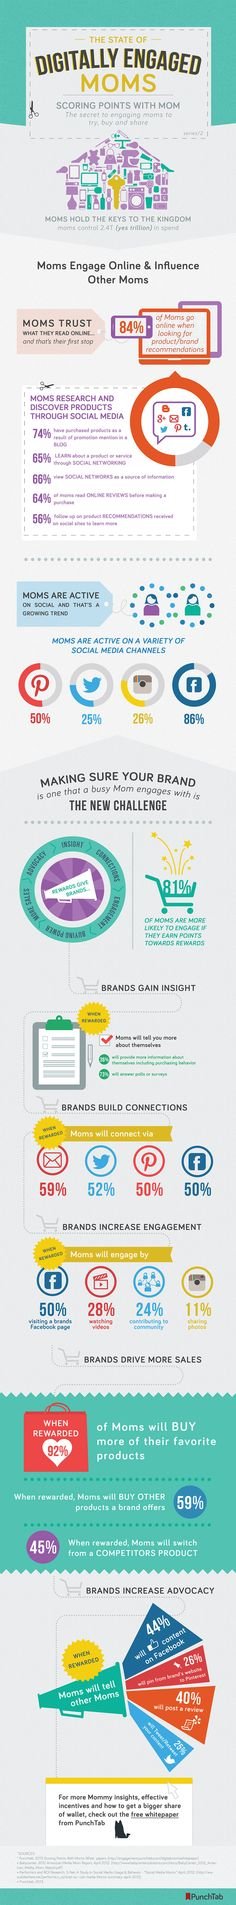 The State of Digitally Engaged Moms Connecting with Brands. #Infographic